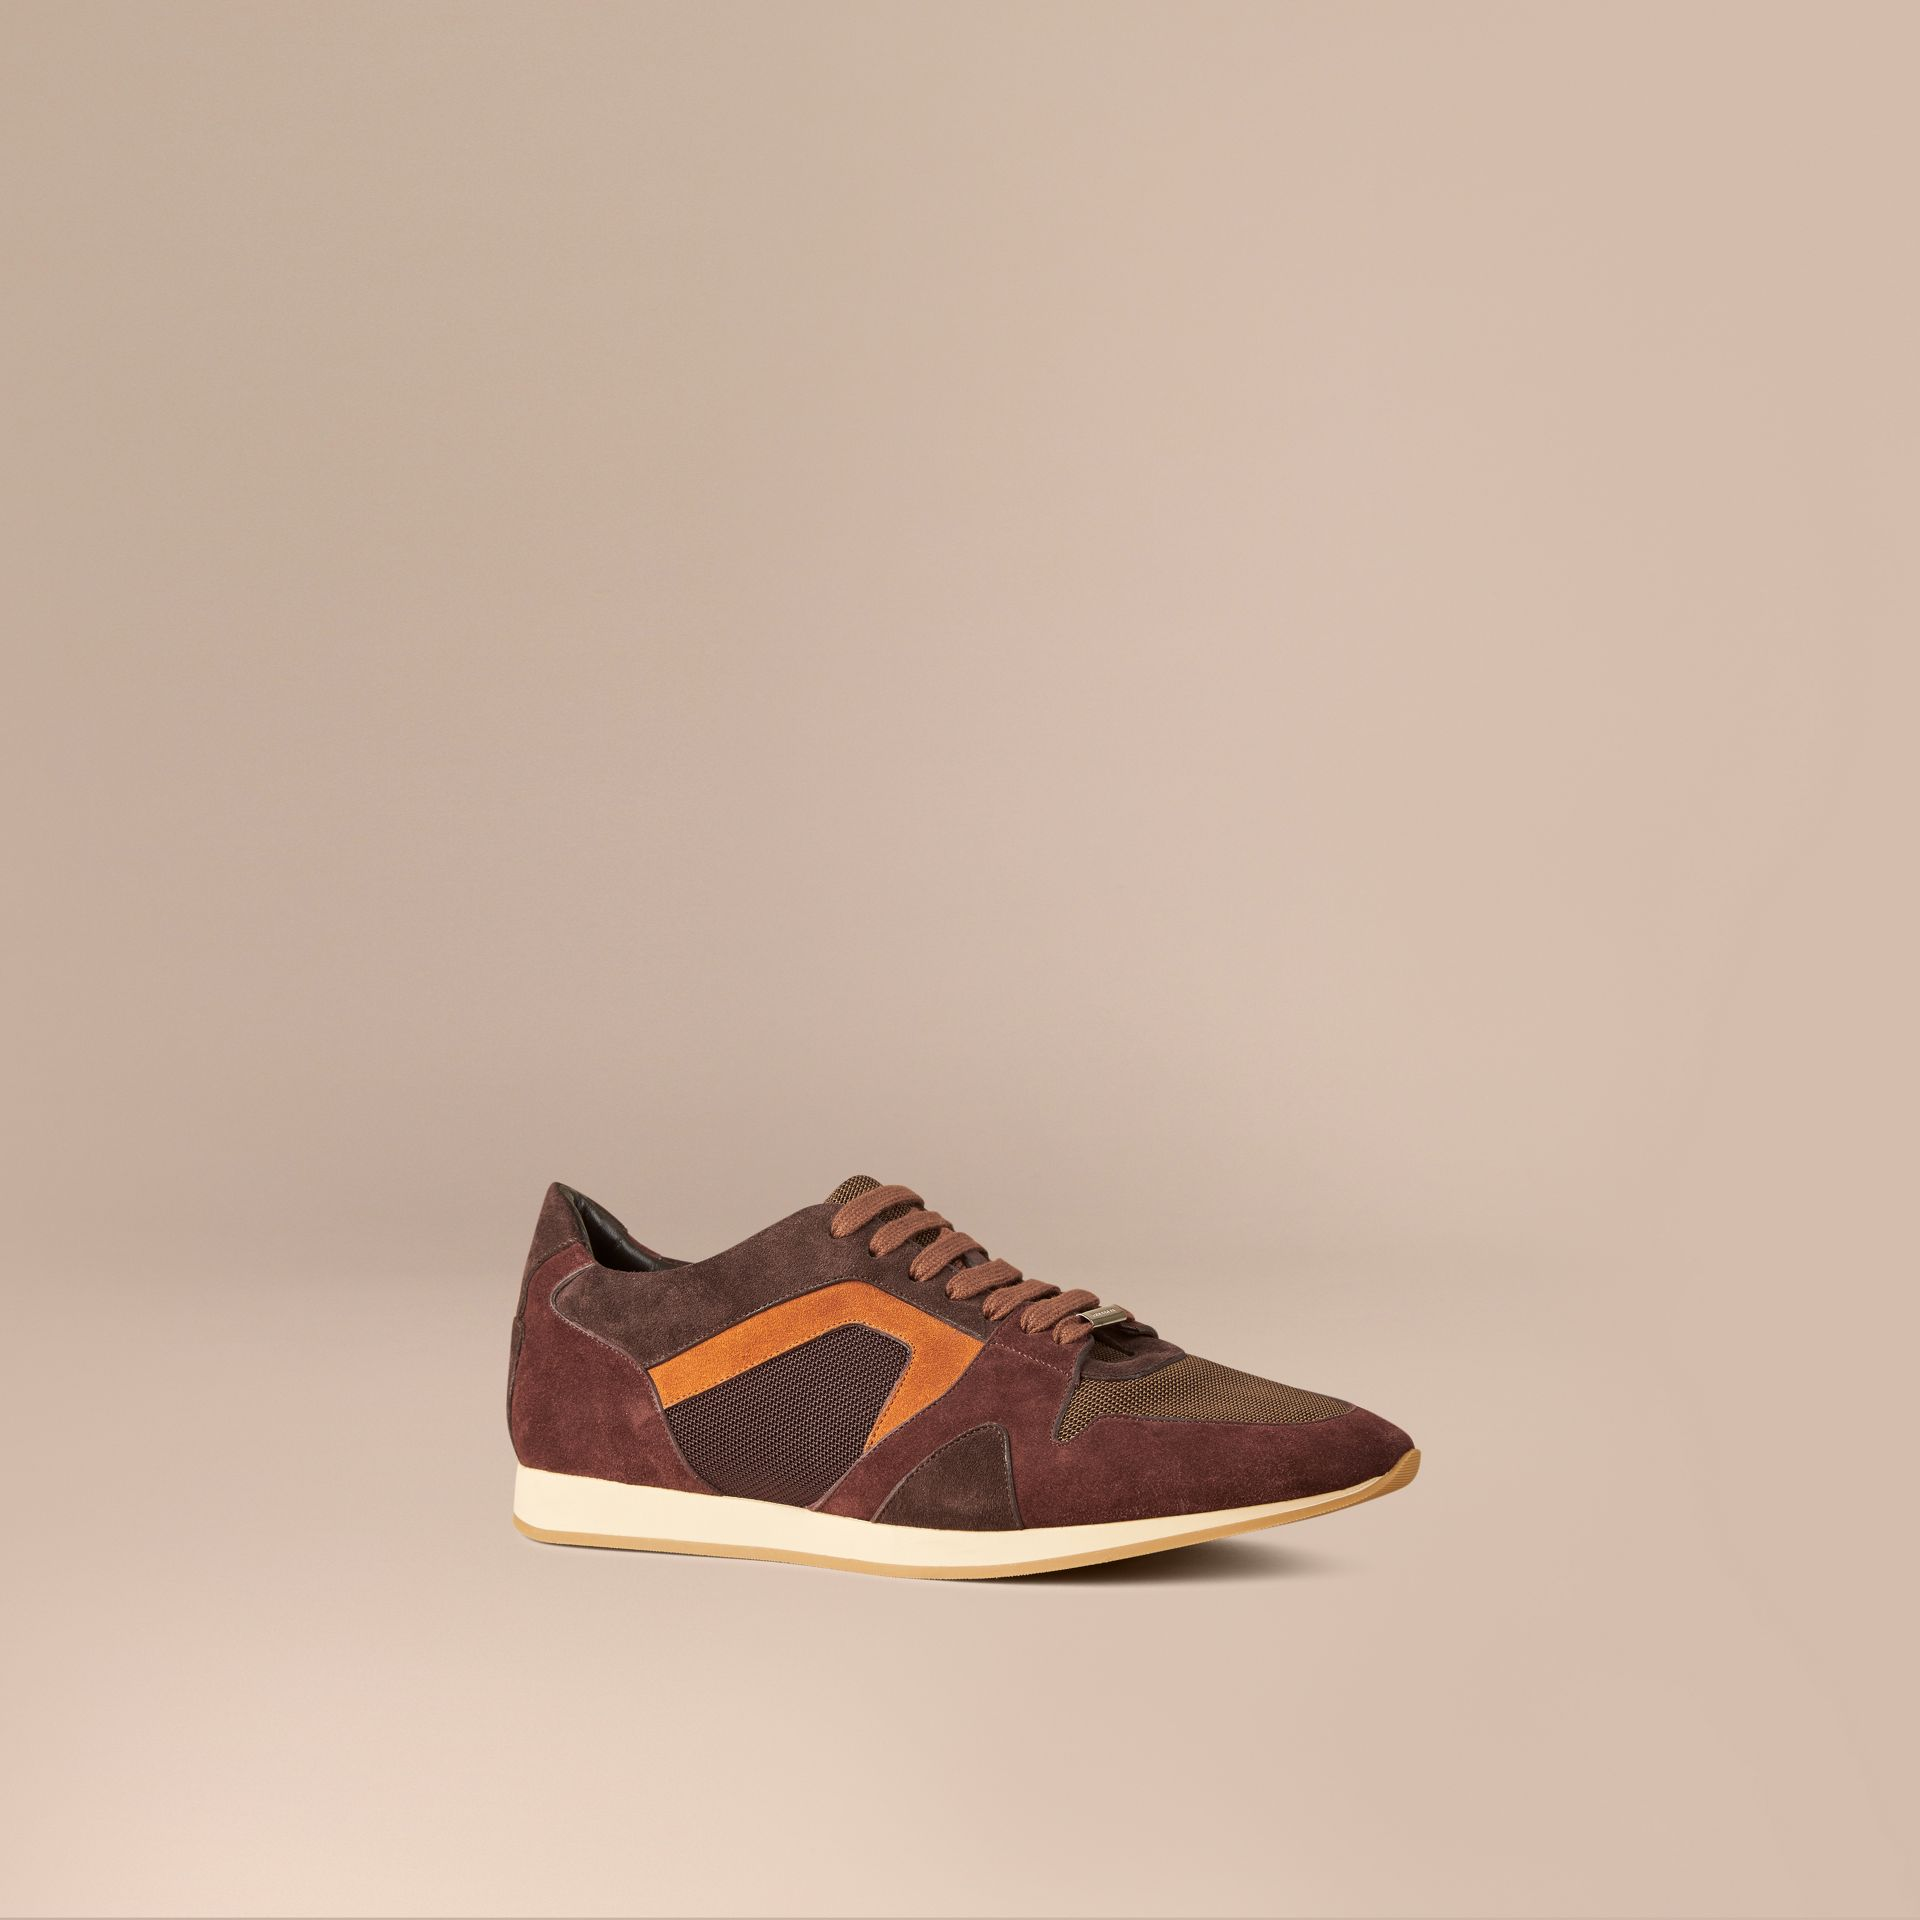 Russet brown The Field Sneaker in Colour Block Suede and Mesh Russet Brown - gallery image 1